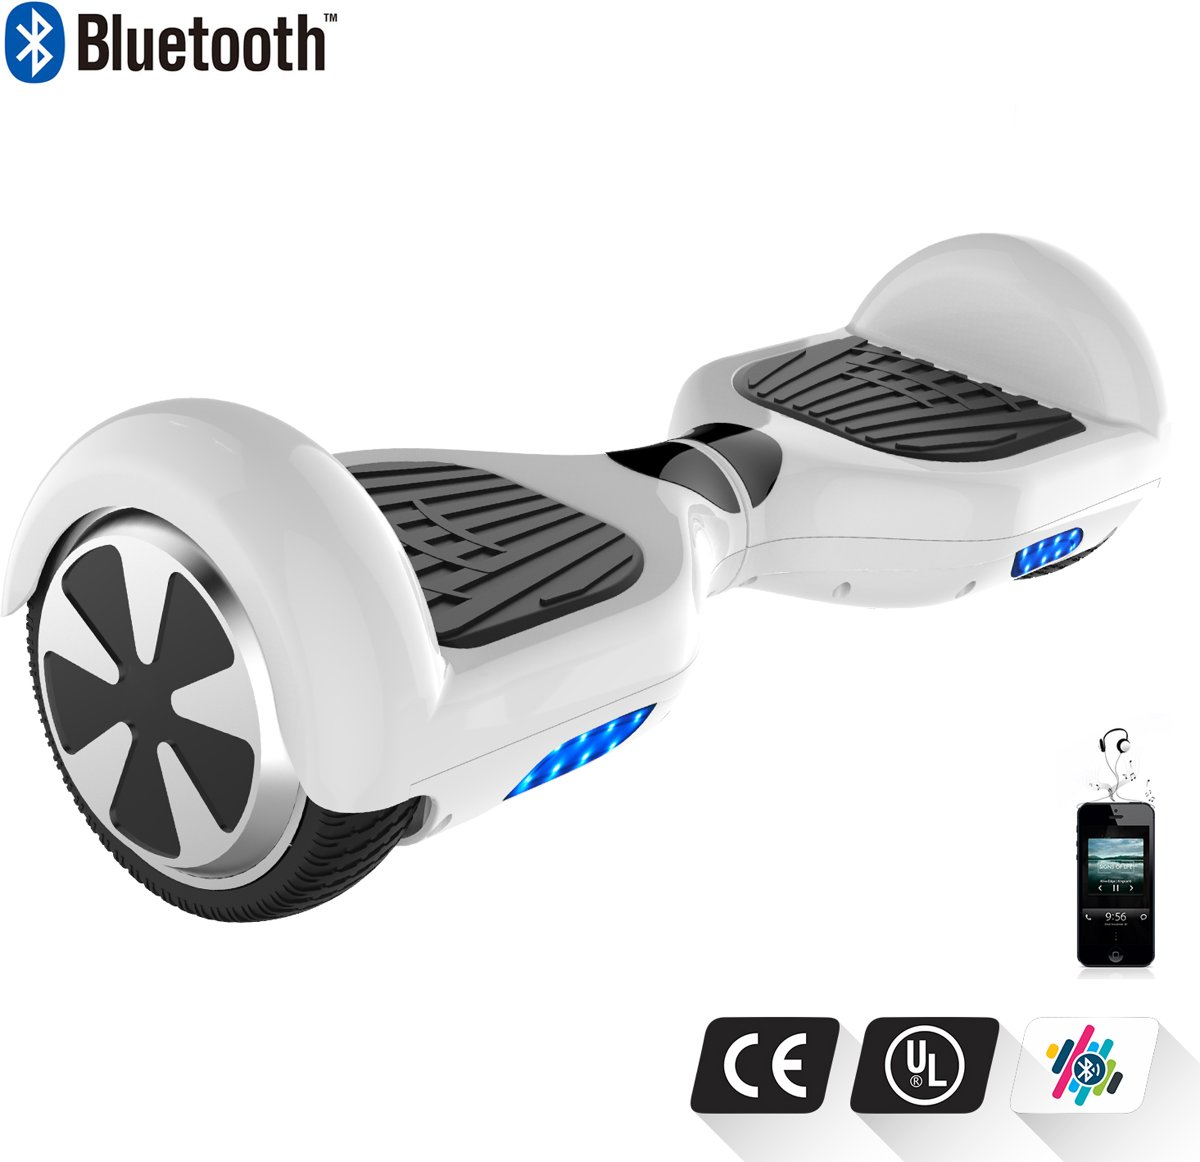 Tailwind Self Balancing Smart Hoverboard Balance Scooter 6.5 inch/ V.5 Bluetooth speakers/ LED Verlichting /speciaal ontwerp - Wit